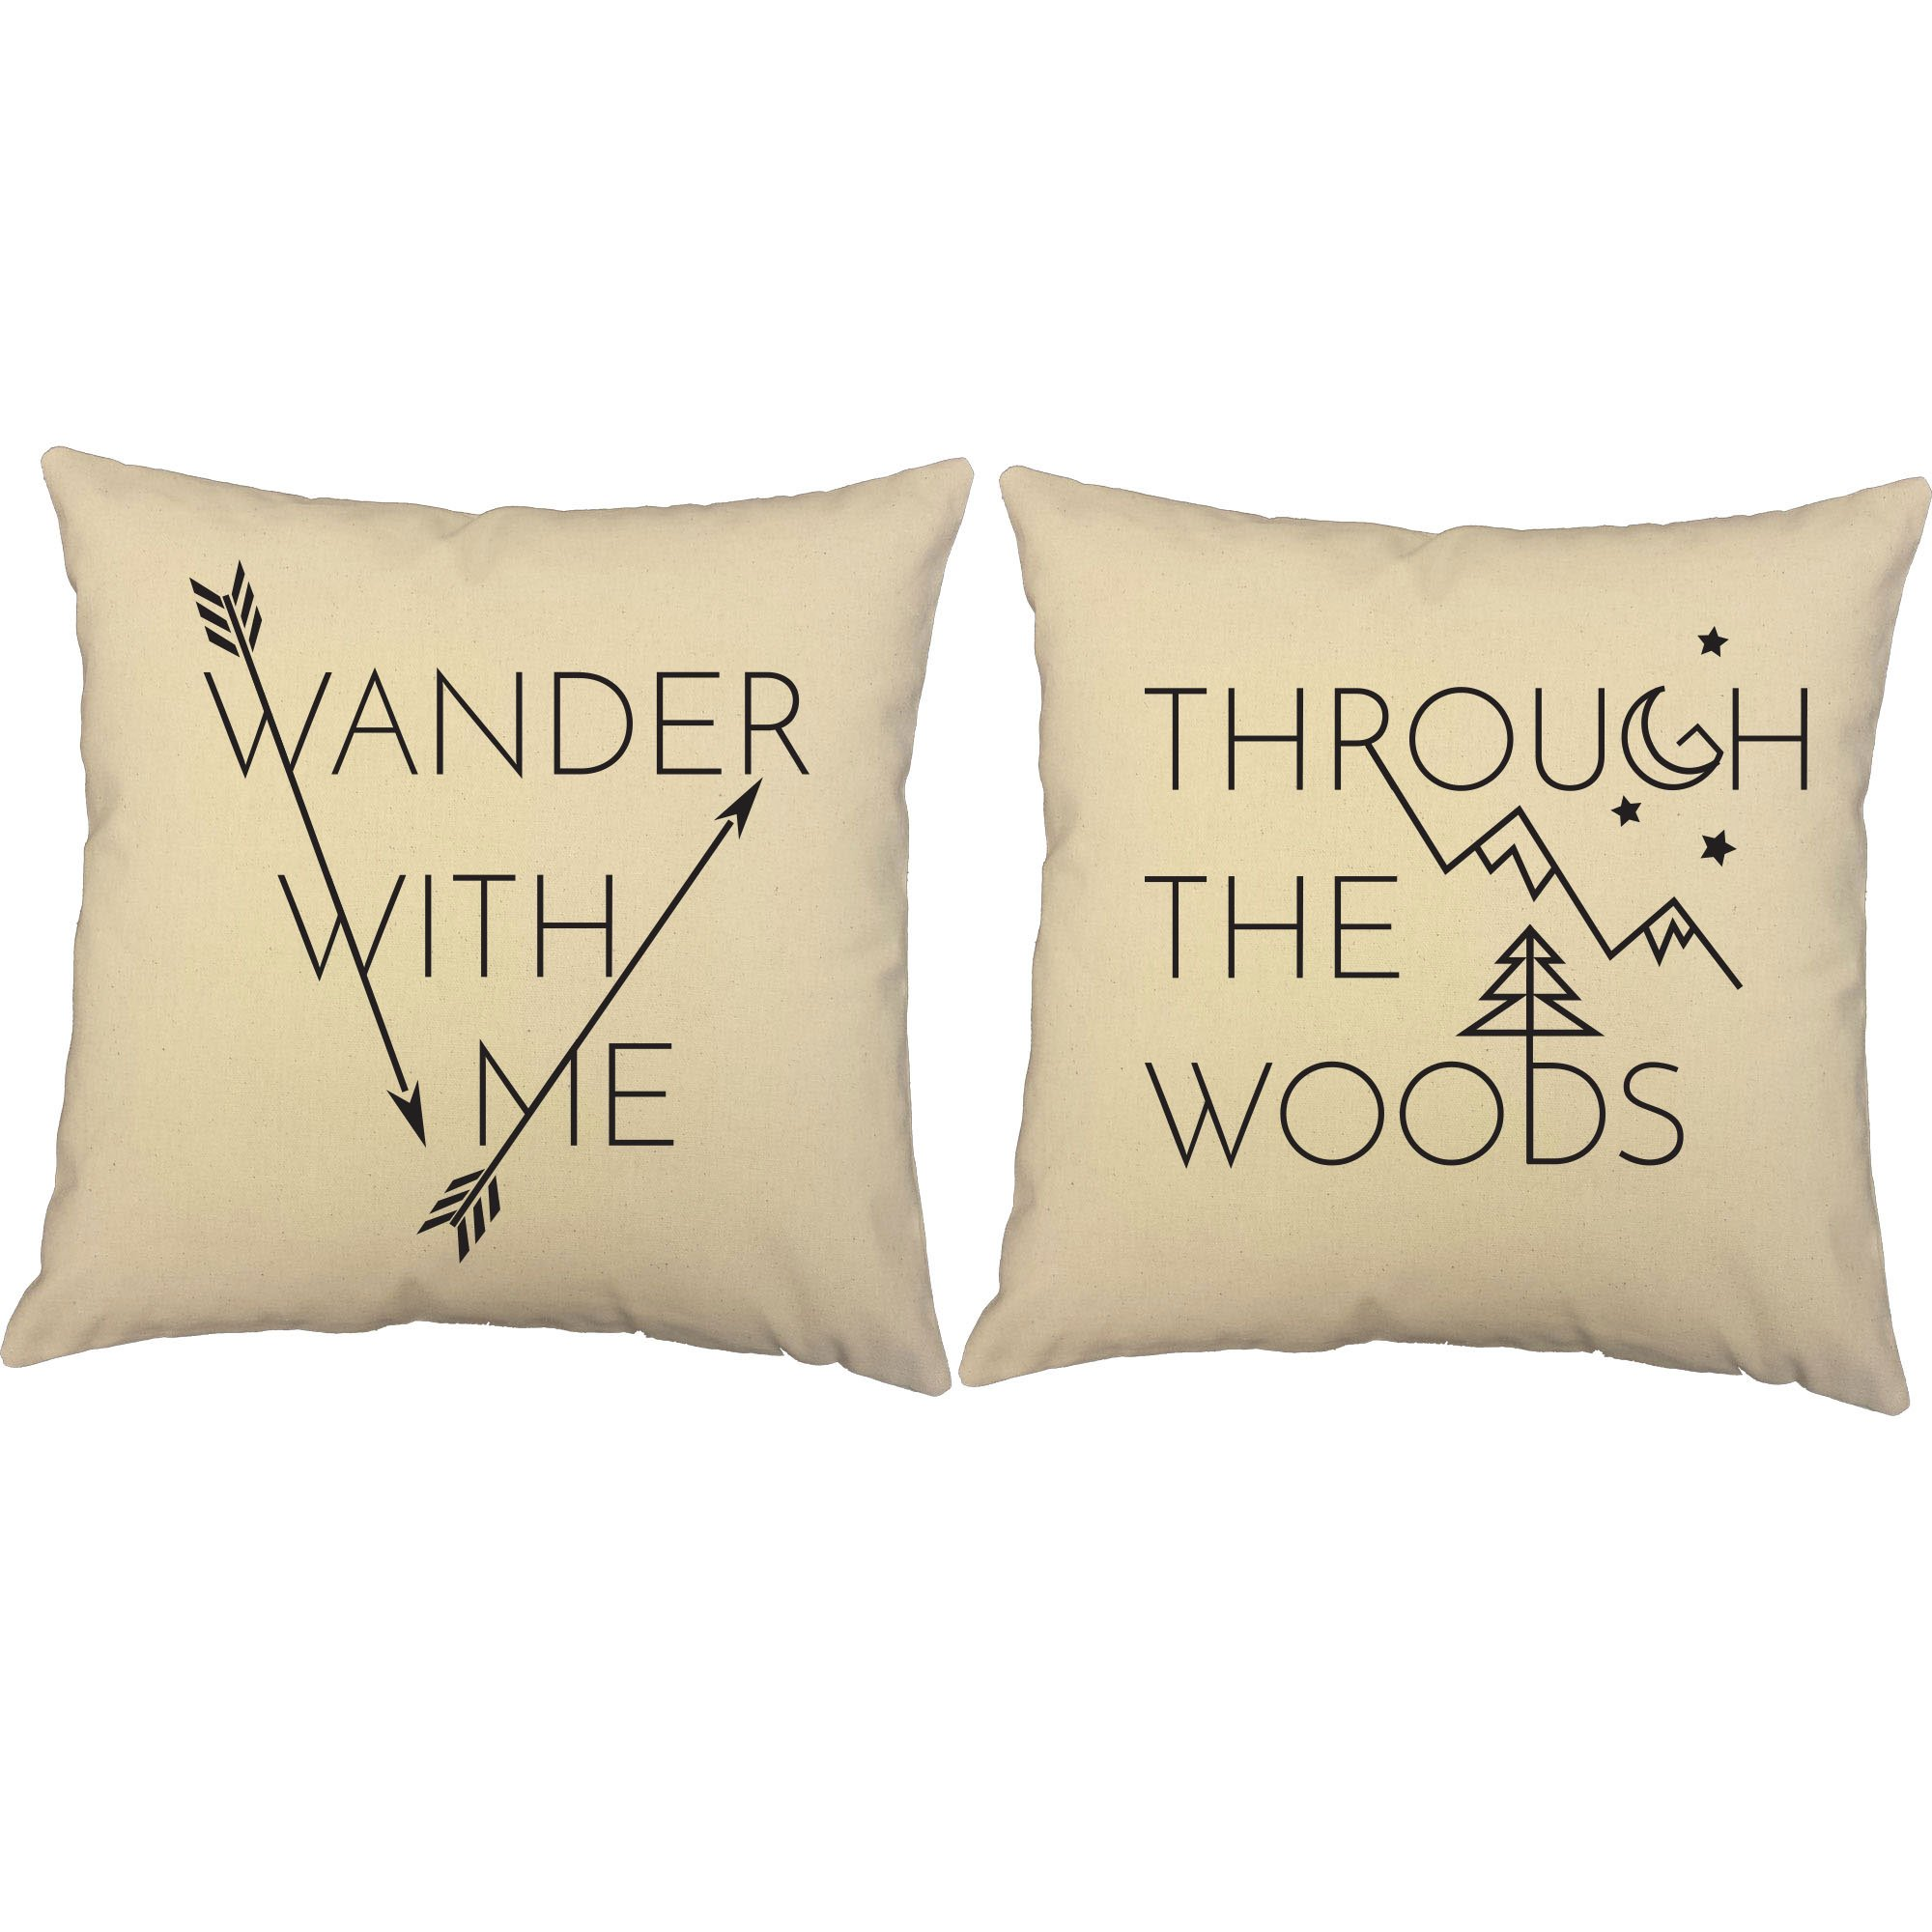 RoomCraft Set of 2 Wander with Me Through The Woods Throw Pillows 14x14 Inch Square Natural Cotton Cushions